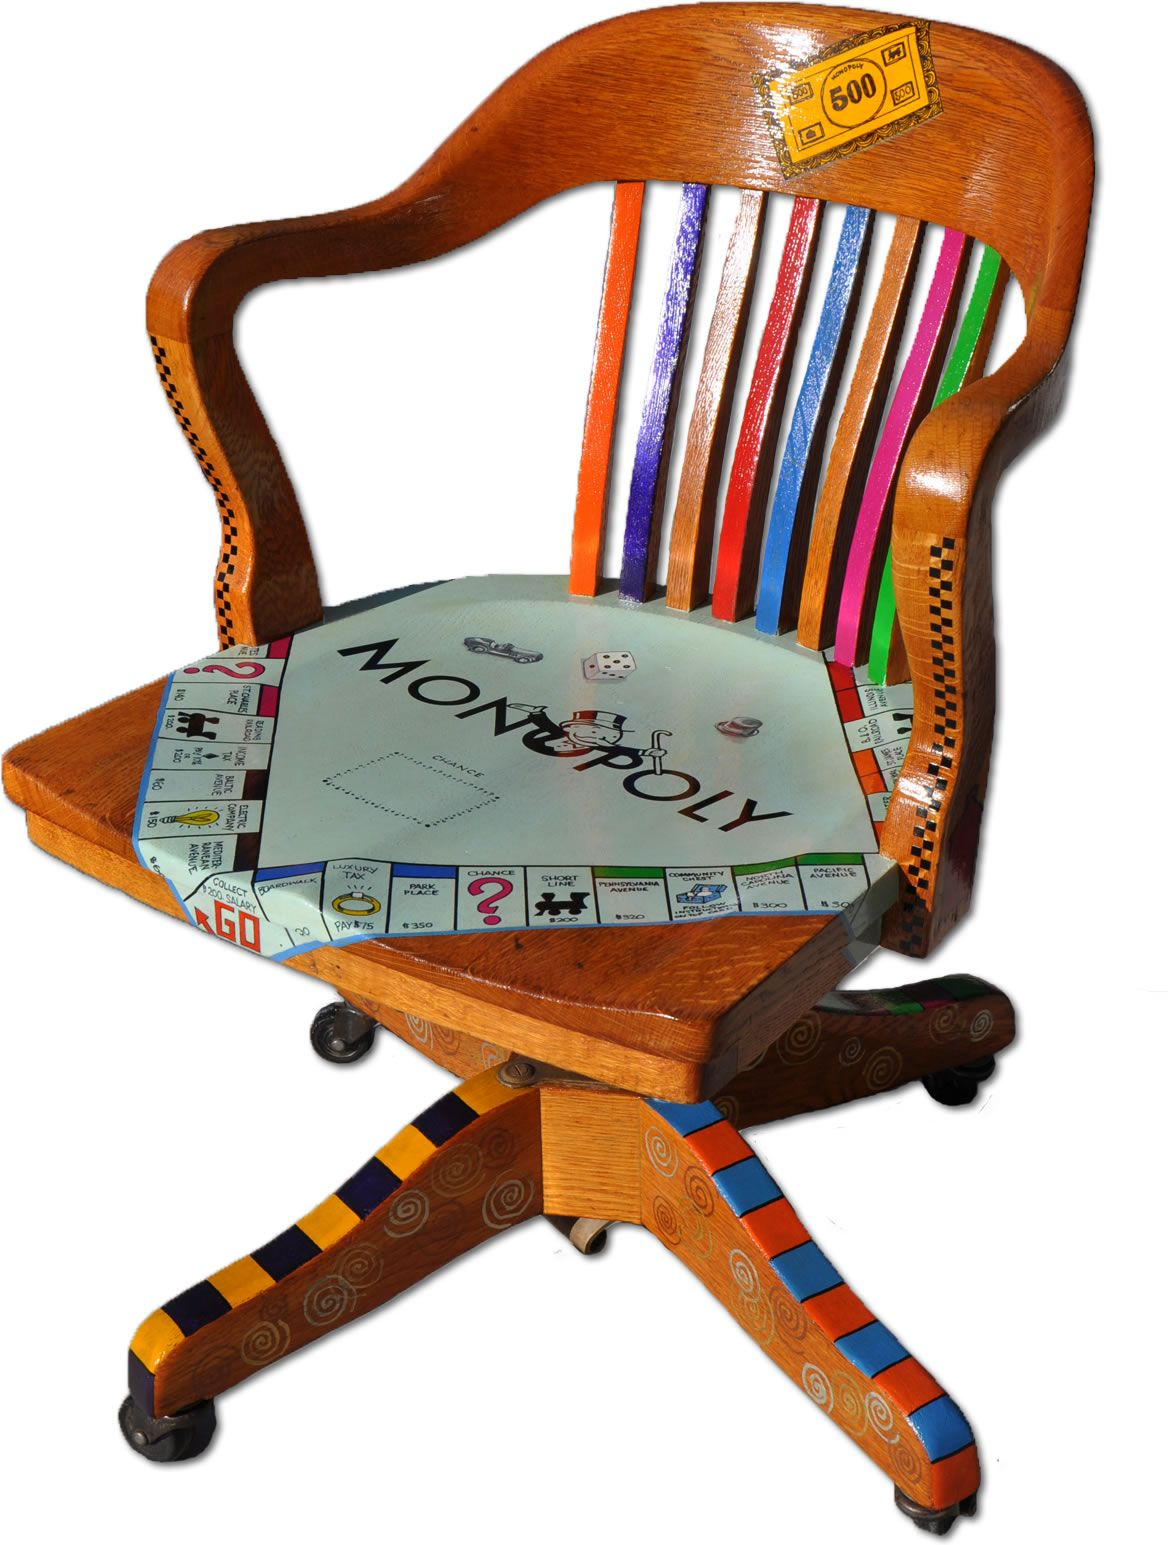 Cool chair paint designs - Monopoly Chair I M Torn I Generally Prefer To Leave Wood